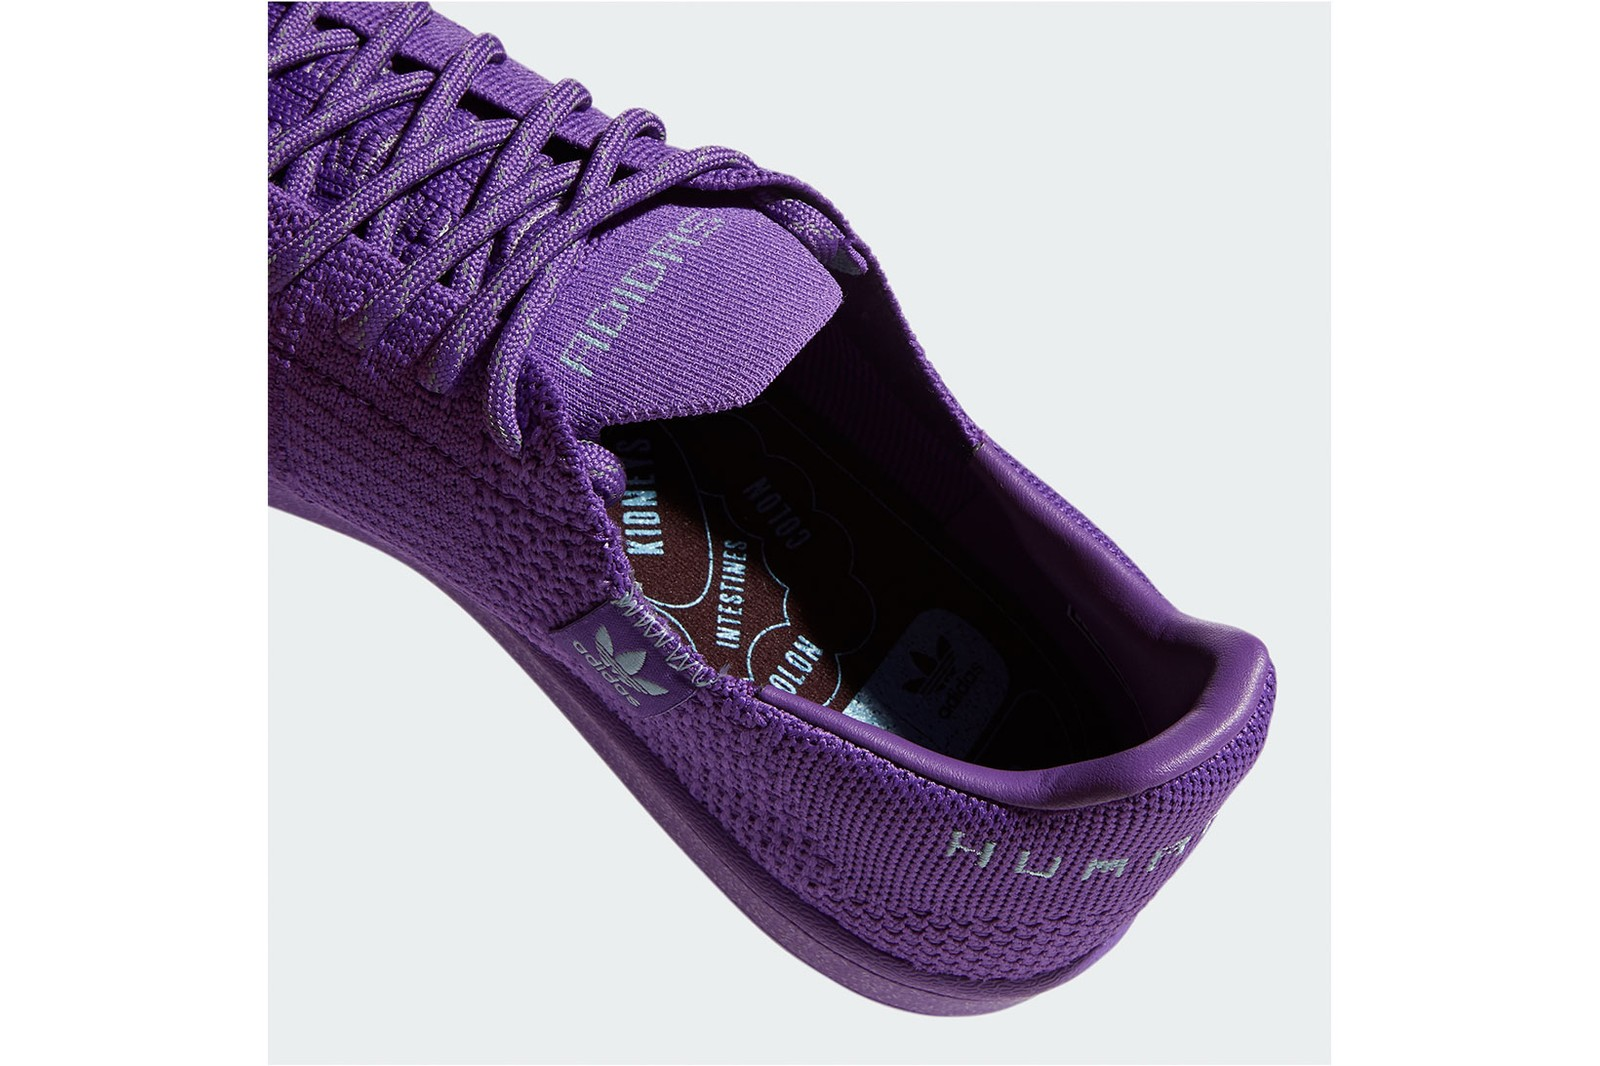 pharrell williams adidas originals primeknit superstar pk yellow purple brown official release date price